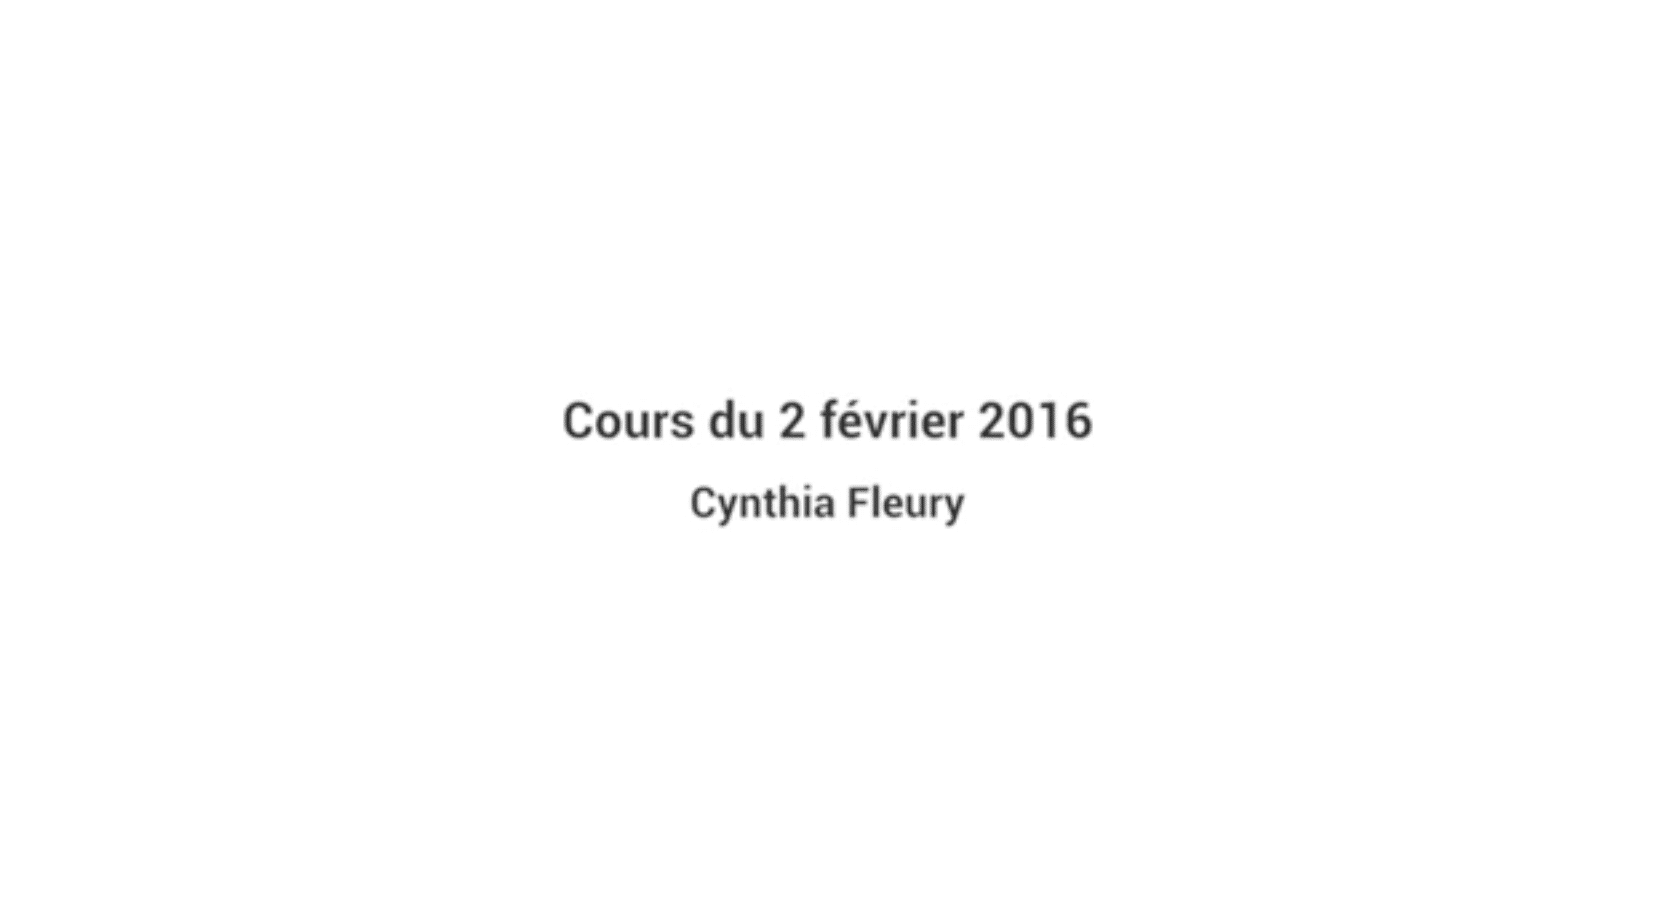 INTRODUCTION À LA PHILOSOPHIE À L'HÔPITAL - 2 Février 2016